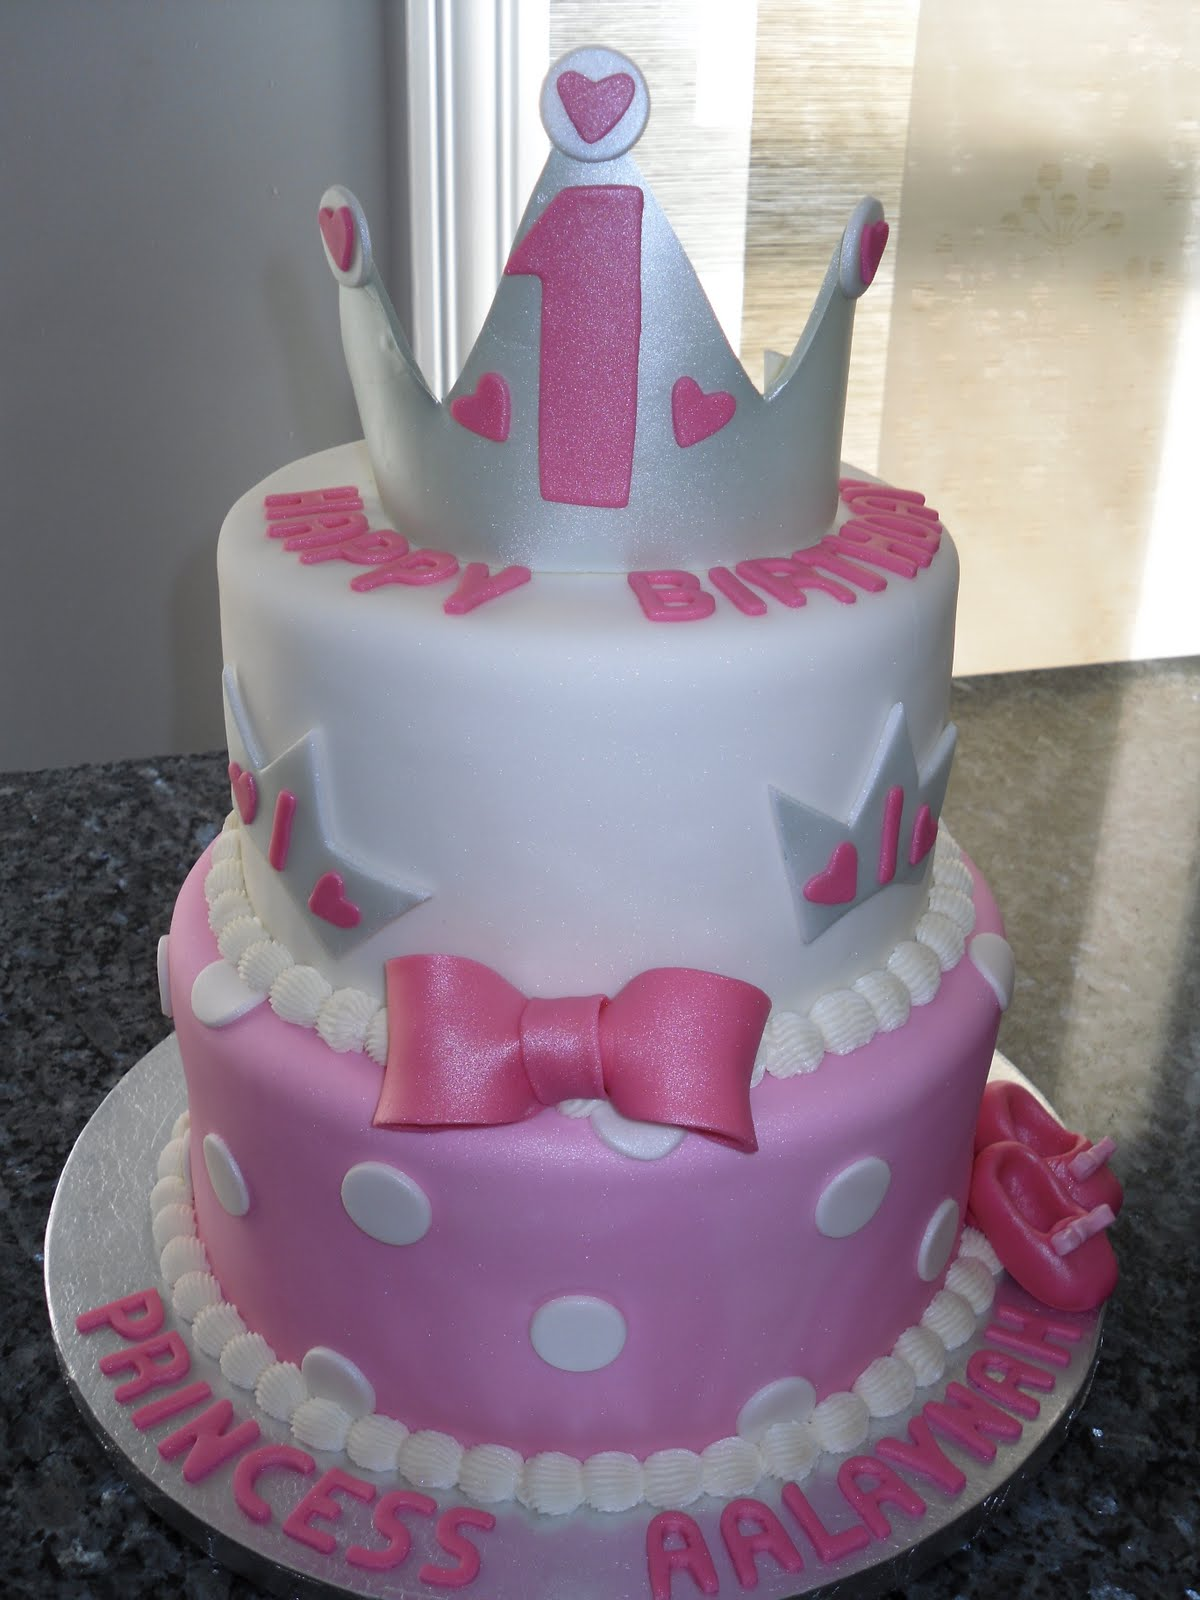 Carat Cakes Two Very Special One Year Old Birthdays